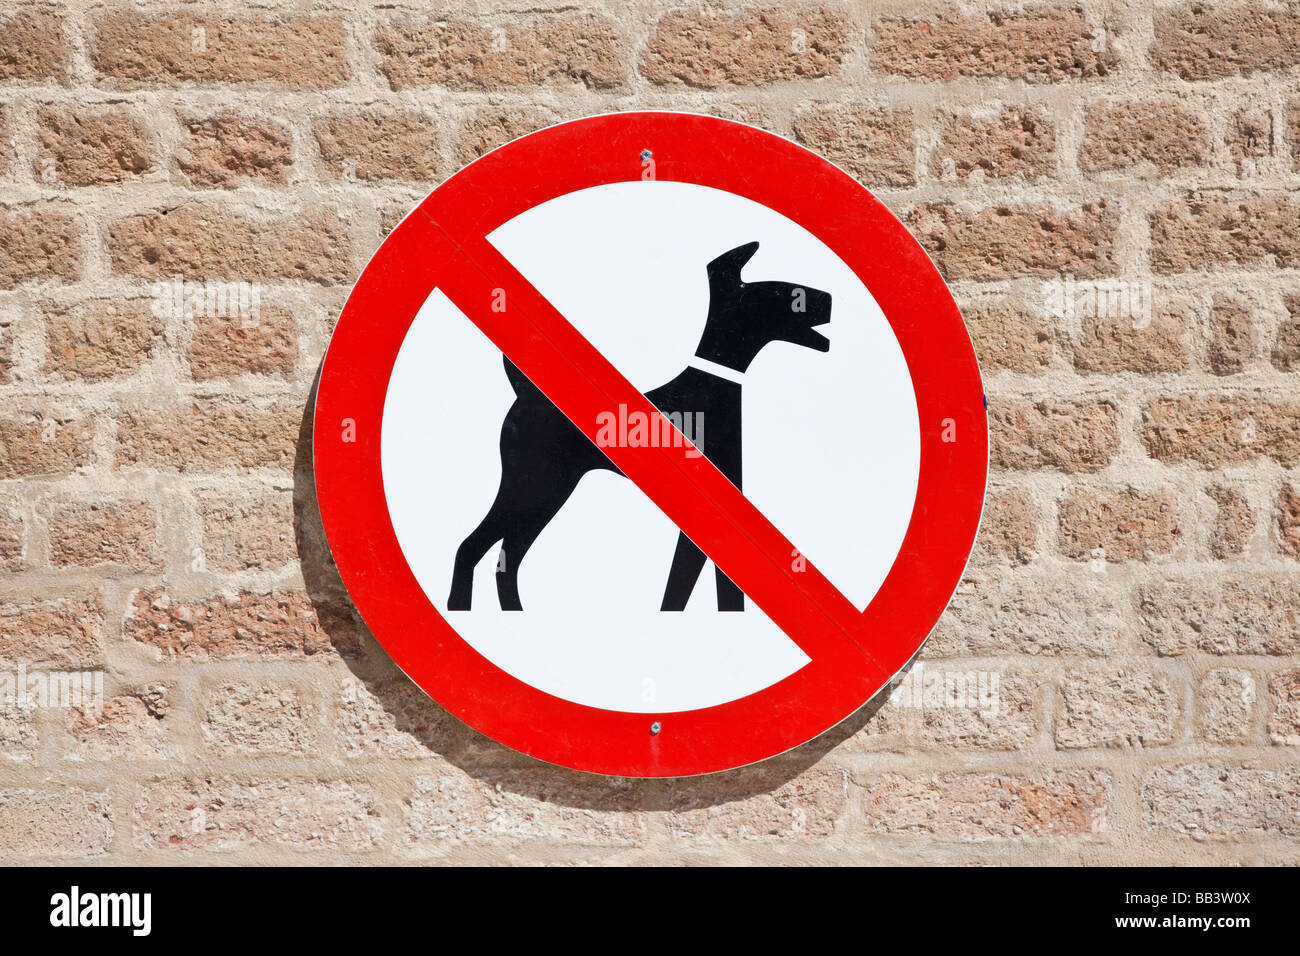 No Dogs symbol sign UK - Stock Image